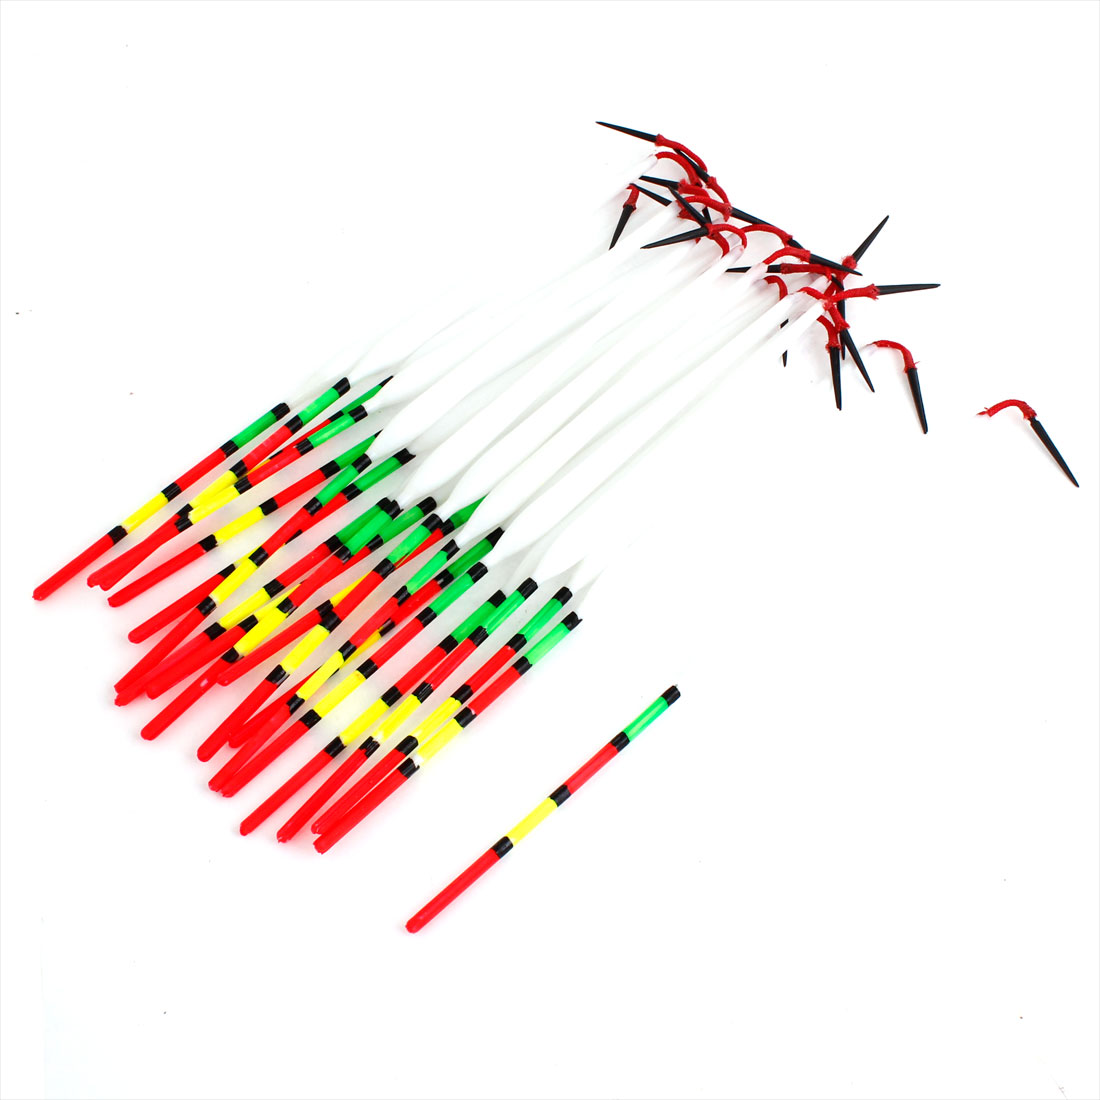 Unique Bargains 20 Pcs Drop Shape Fishing Floaters Bobbers 23.5cm Long by